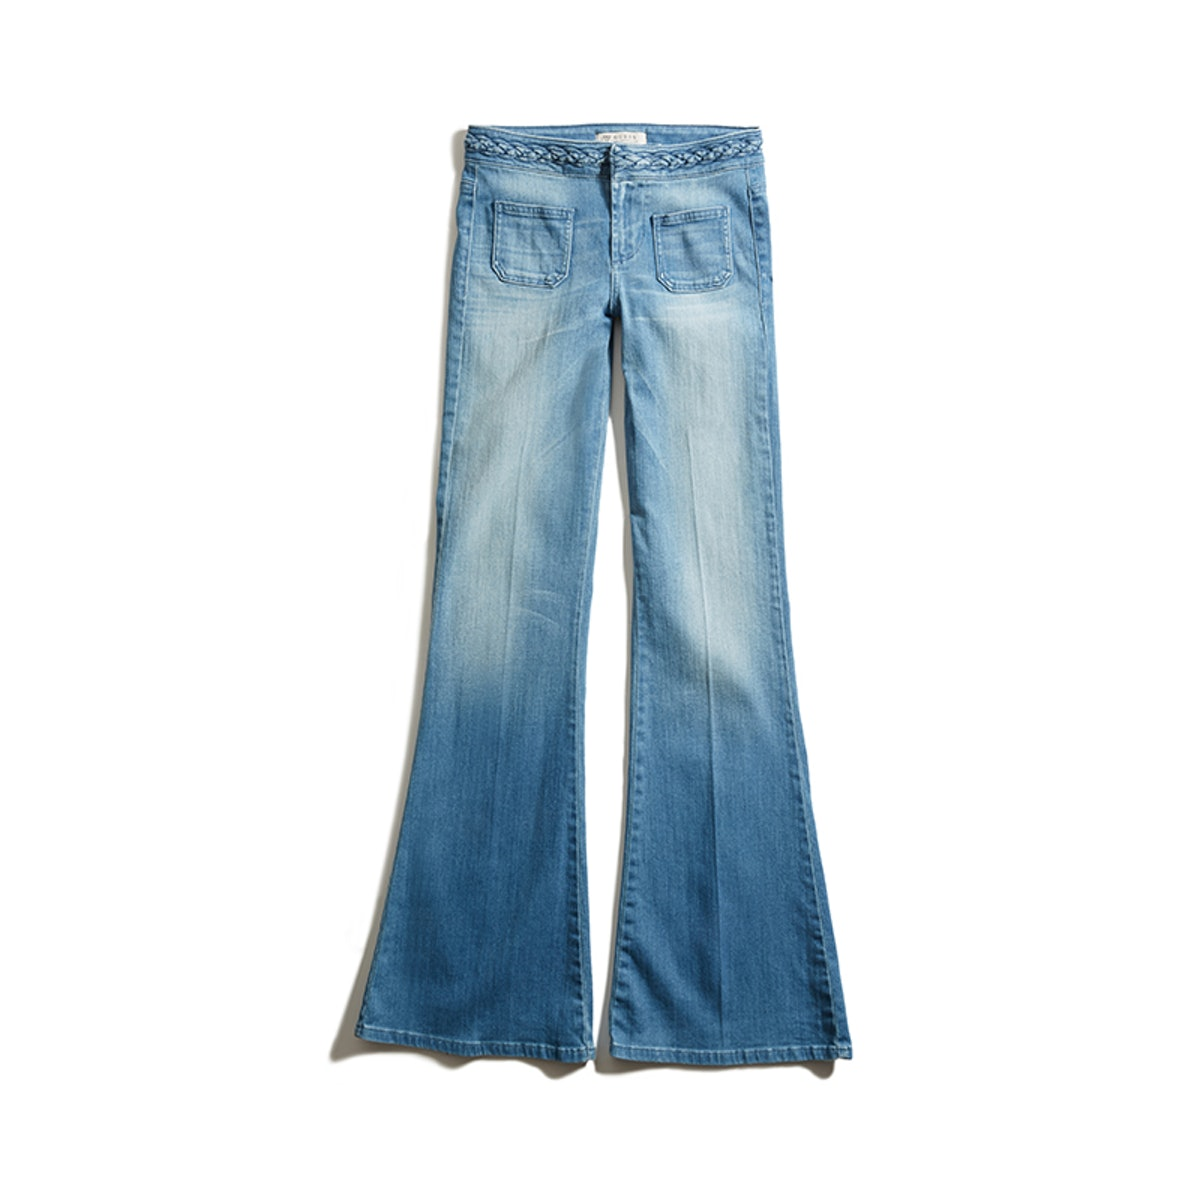 Mid-Rise Braided Flare Jean in '70s Blue Wash'